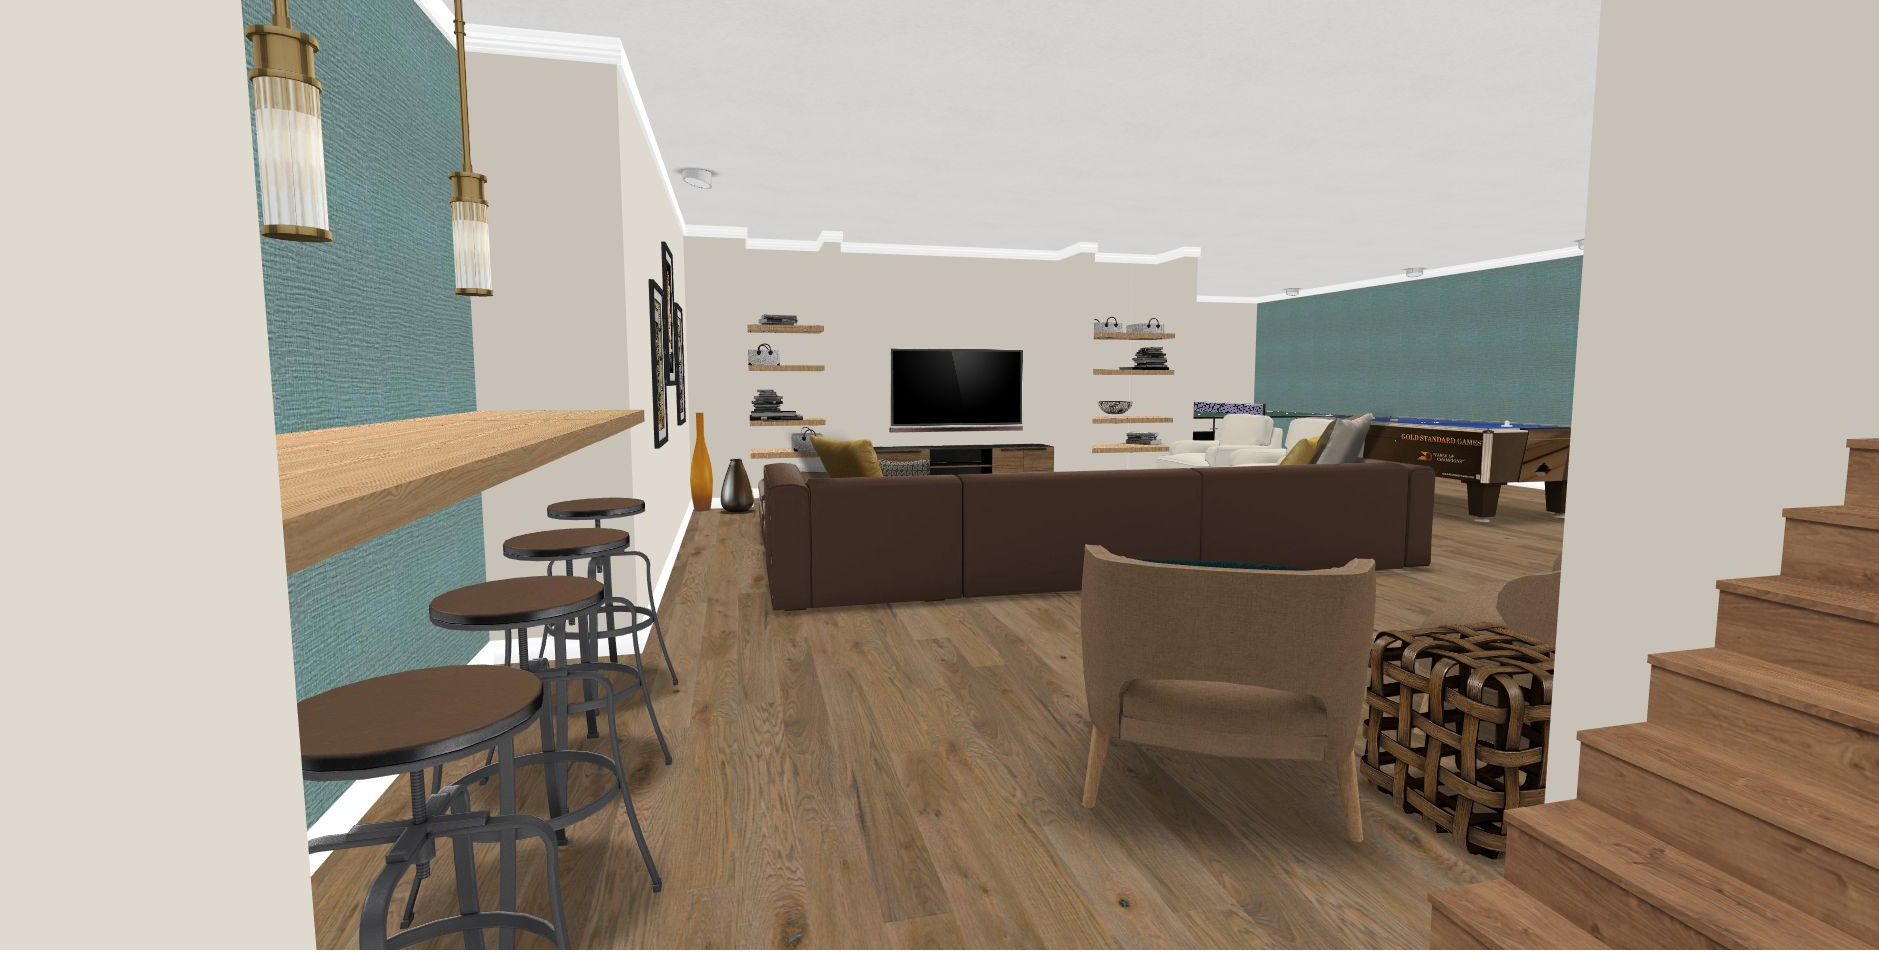 Kaoud Basement Interior Rendering - 1.png